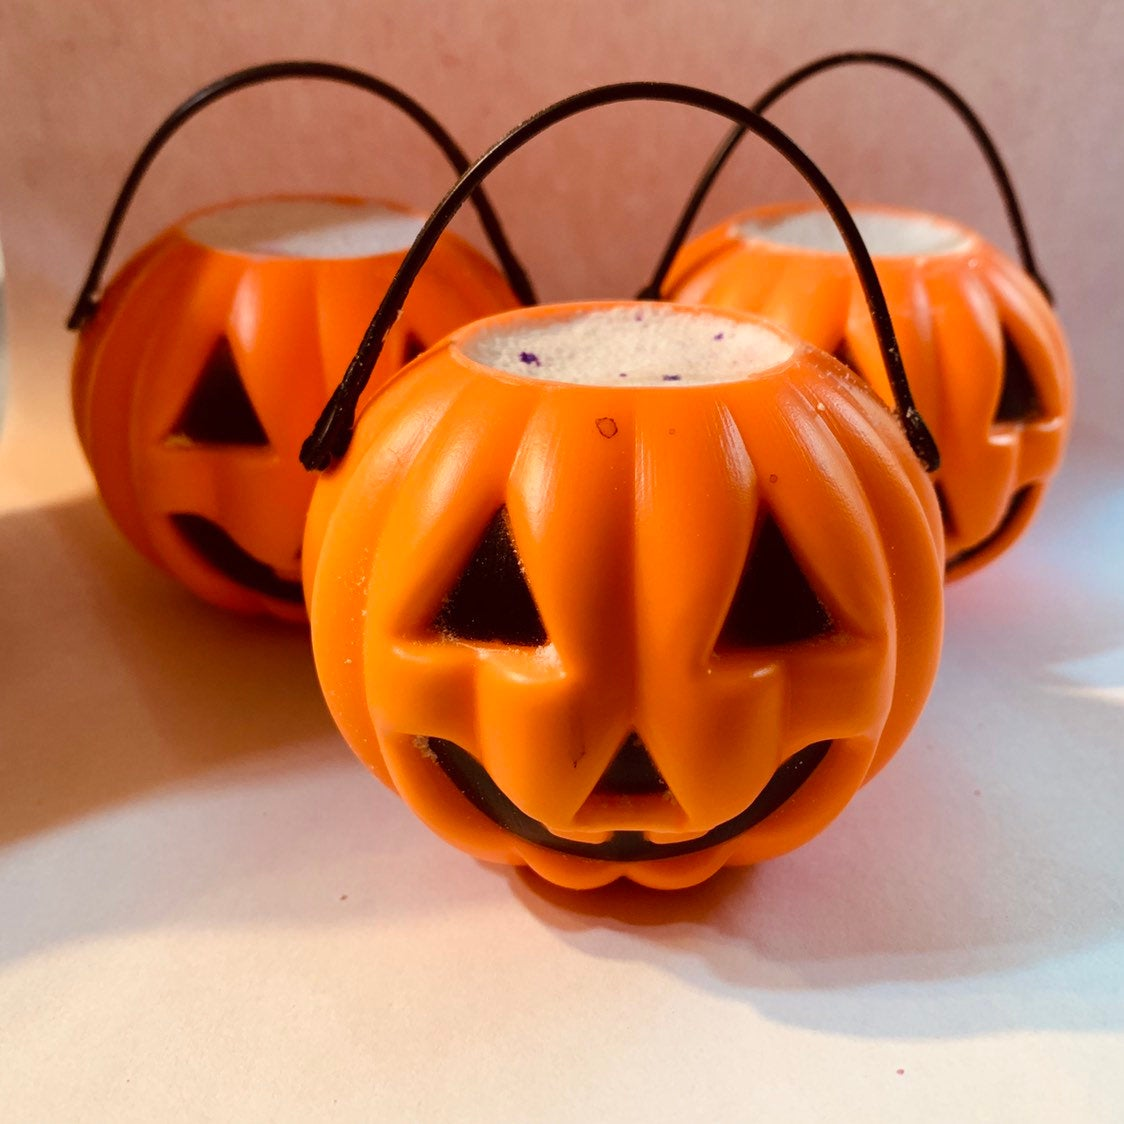 Scary Horror Jack-o-lantern bucket pumpkin Bath Bomb - Melting Pumpkin bath bomb